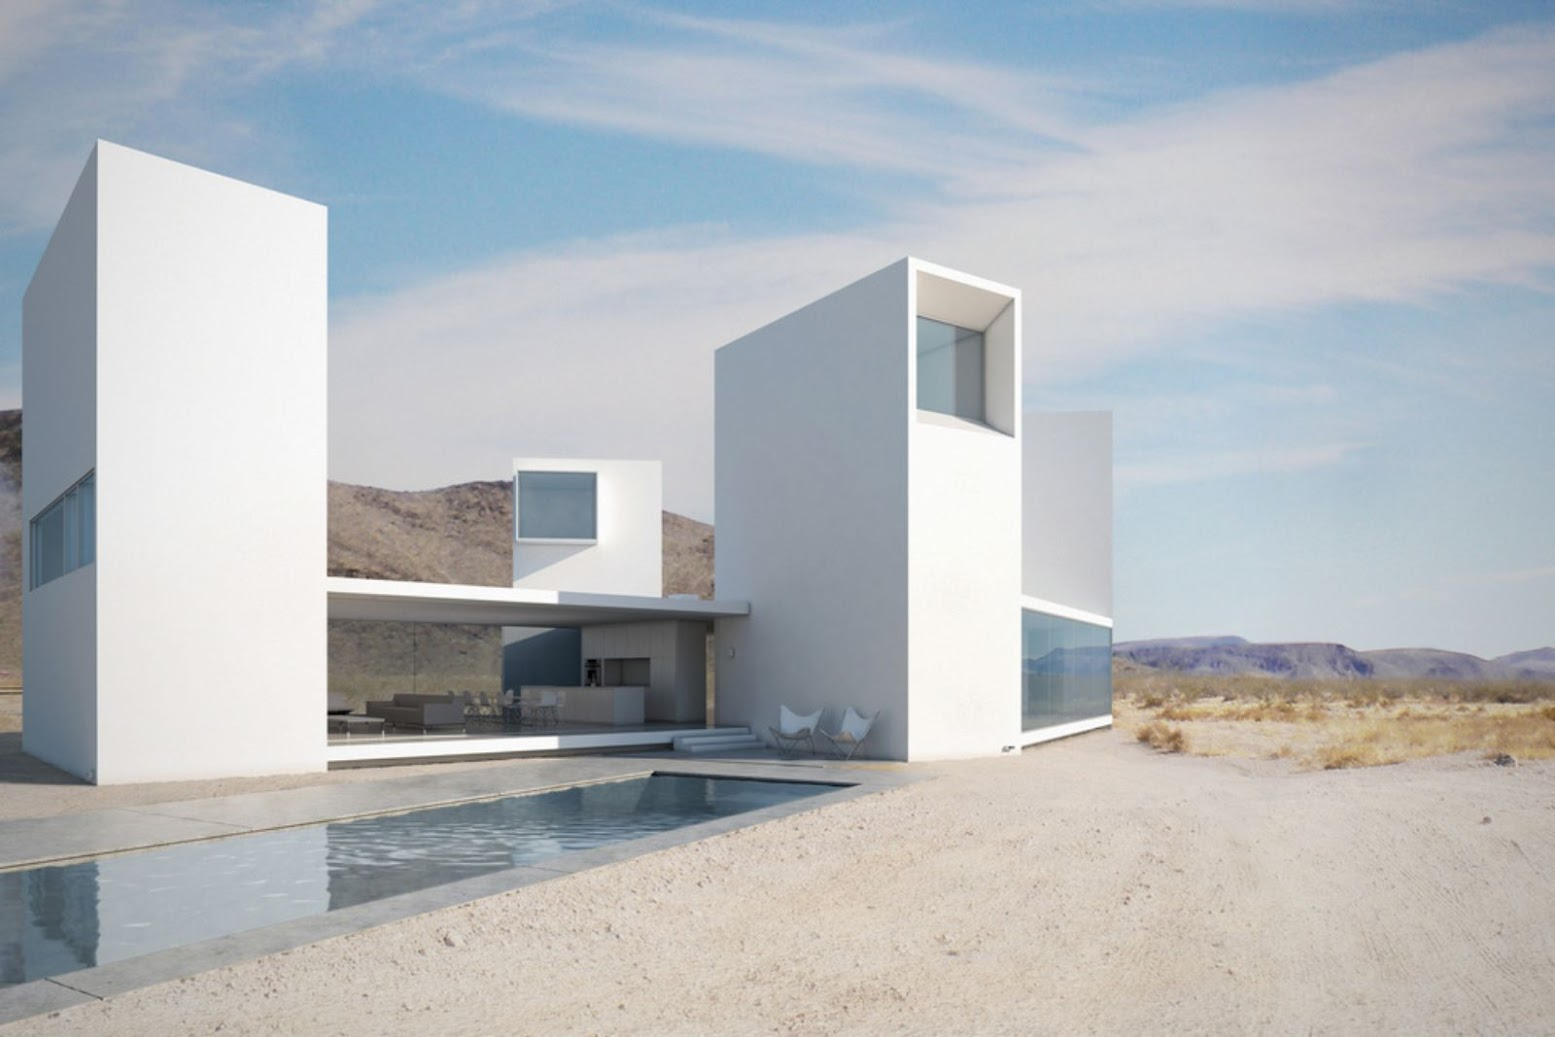 Coachella Valley, Palm Desert, California 92211, Stati Uniti: [FOUR EYES HOUSE BY EDWARD OGOSTA ARCHITECTURE]